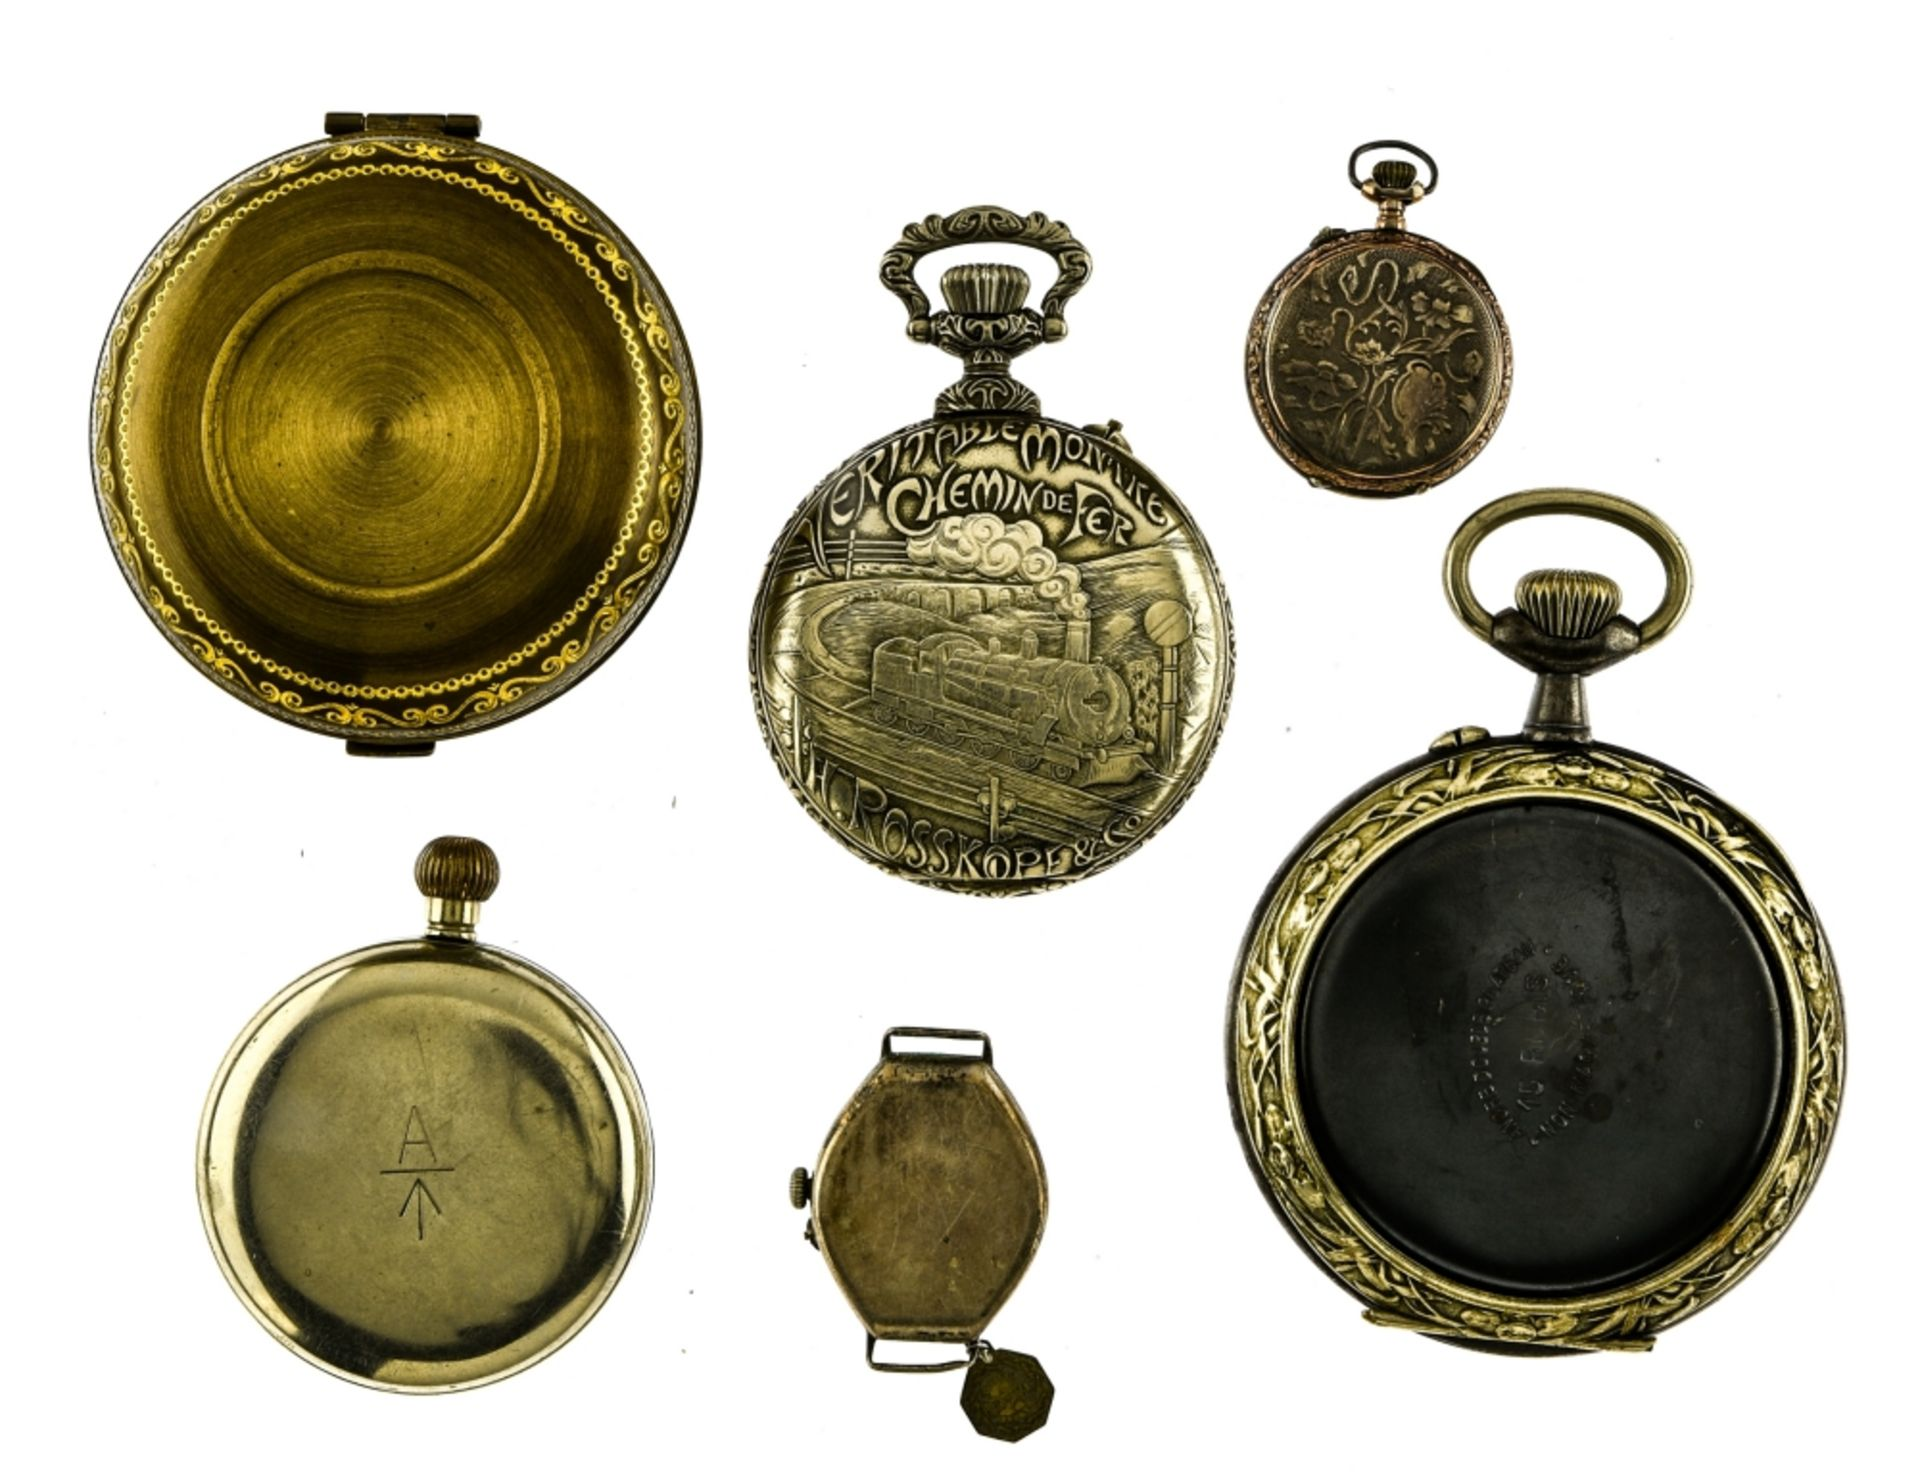 Lot of 6 watches including 4 pocket watches, a travel alarm clock and a wristwatch. - Image 2 of 7